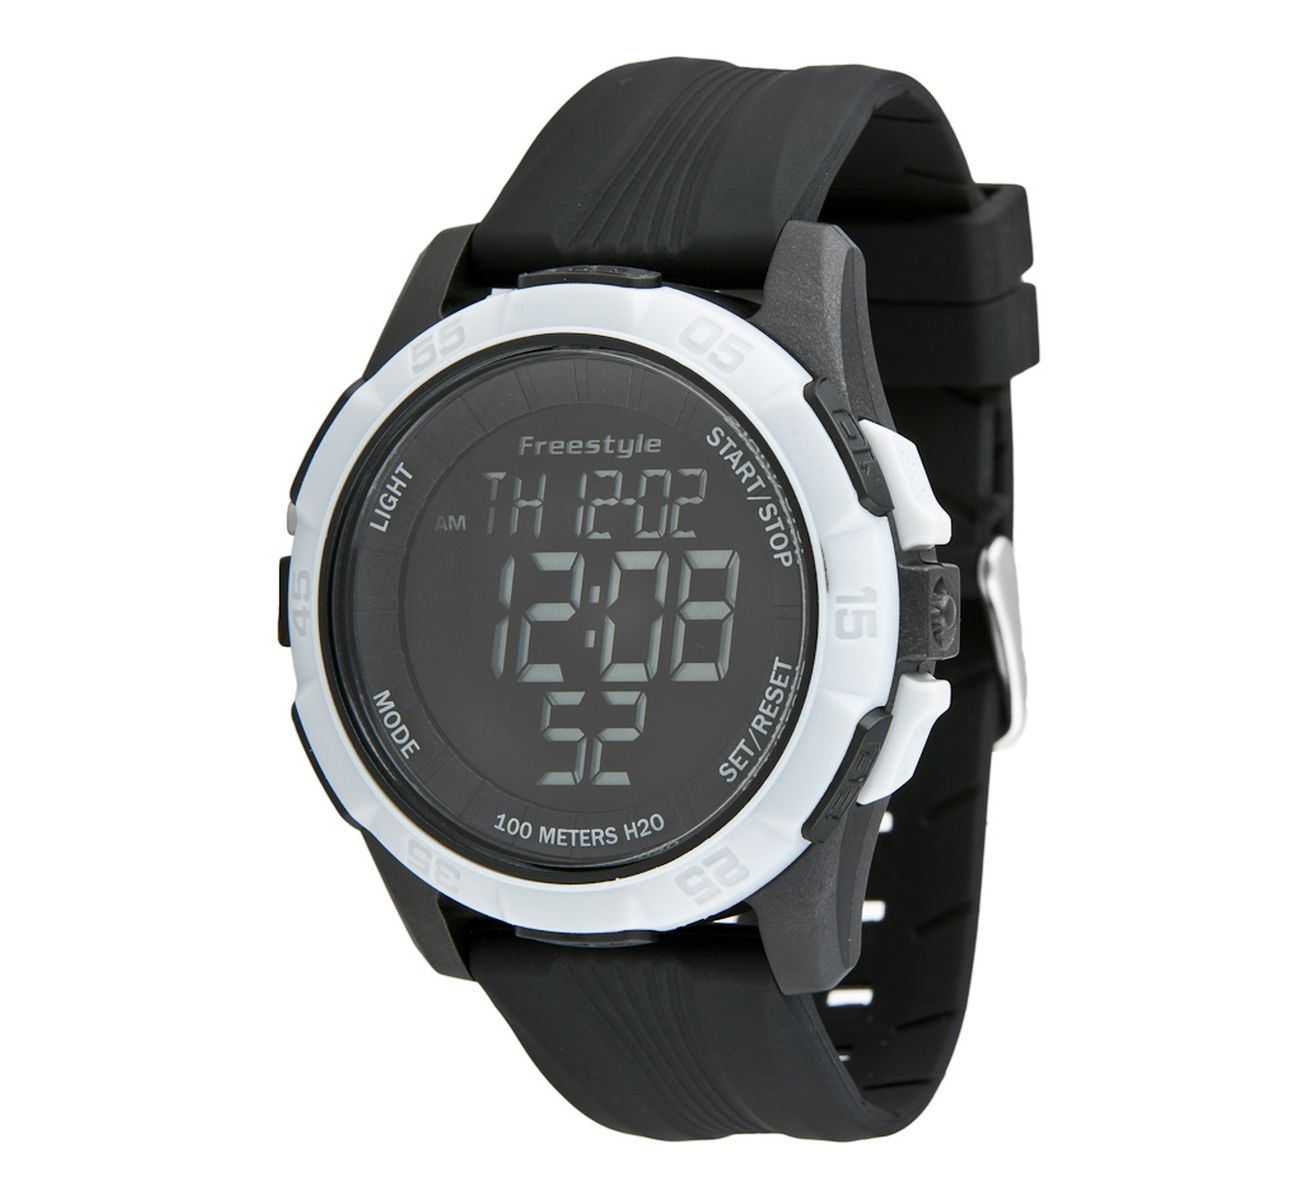 mens style usa kampus xl watches at road runner sports